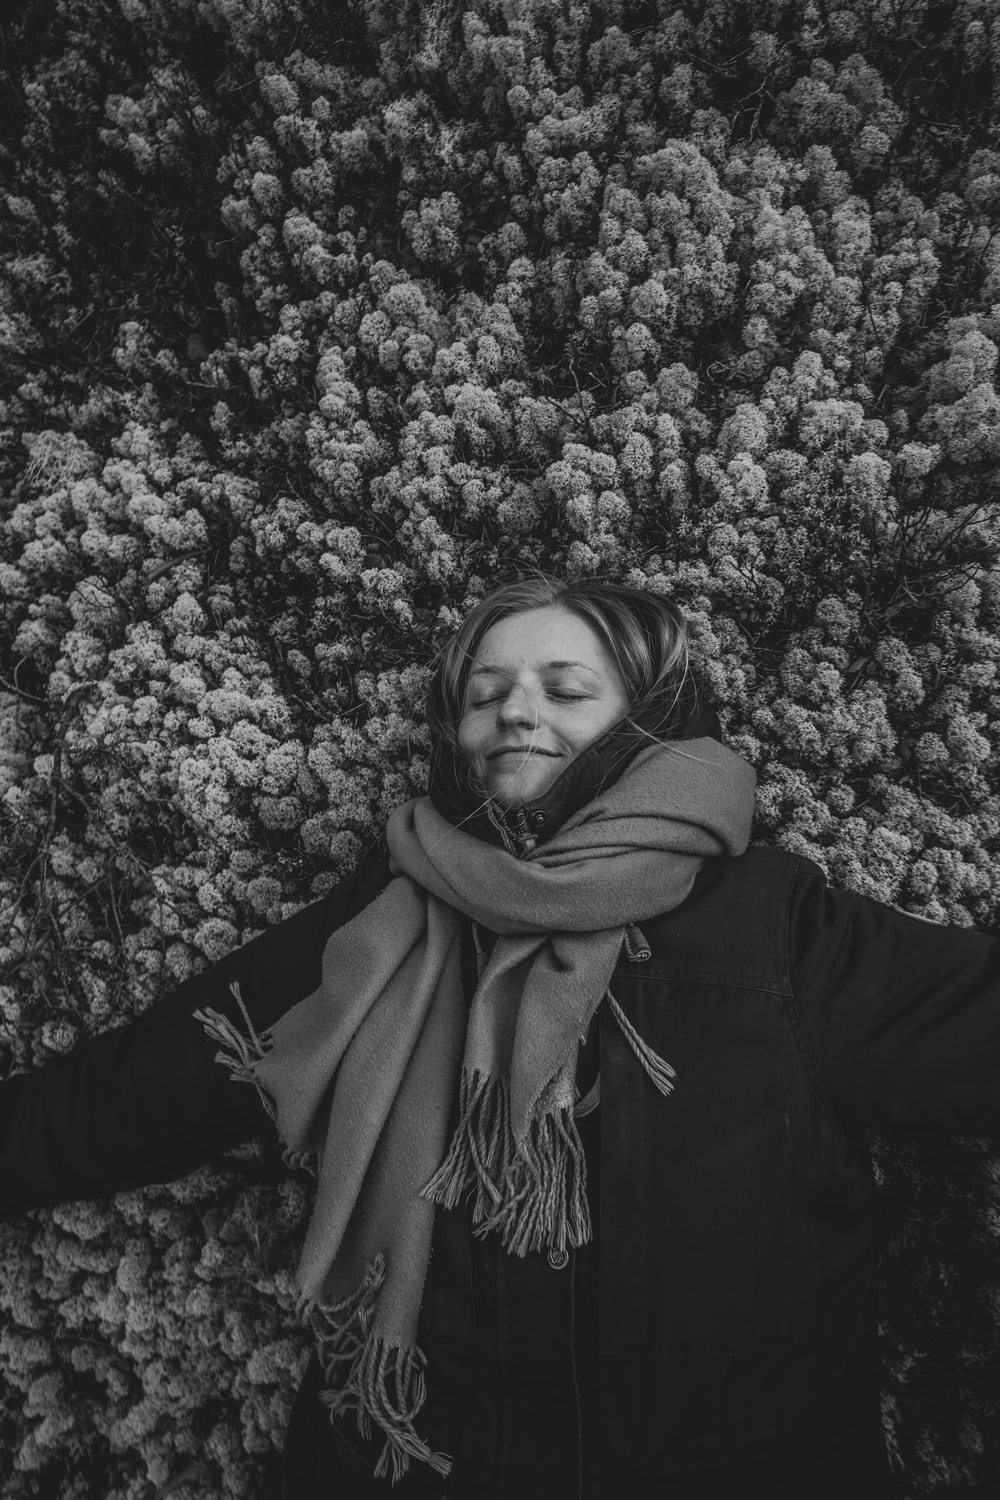 grayscale photo of woman in scarf and jacket